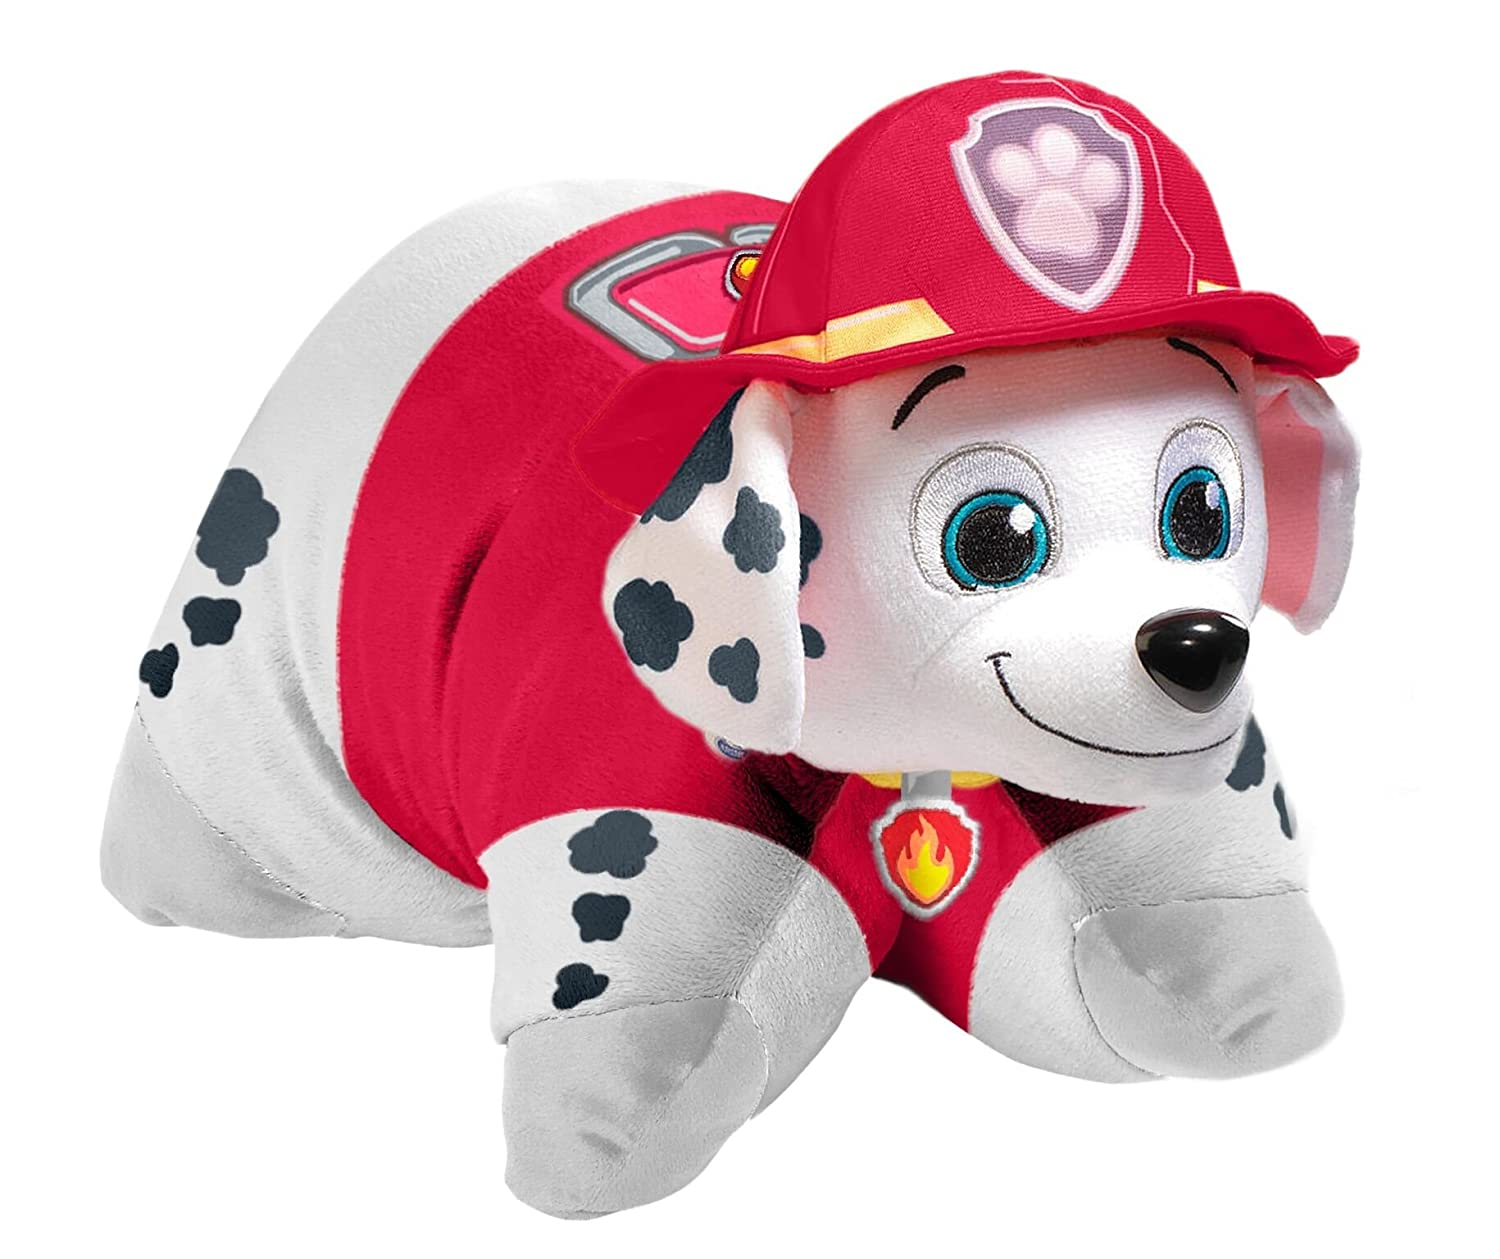 Amazon.com  Pillow Pets Nickelodeon Paw Patrol Marshall Stuffed Animal 16  inch Plush Toy  Home   Kitchen 6b5c1015cde4